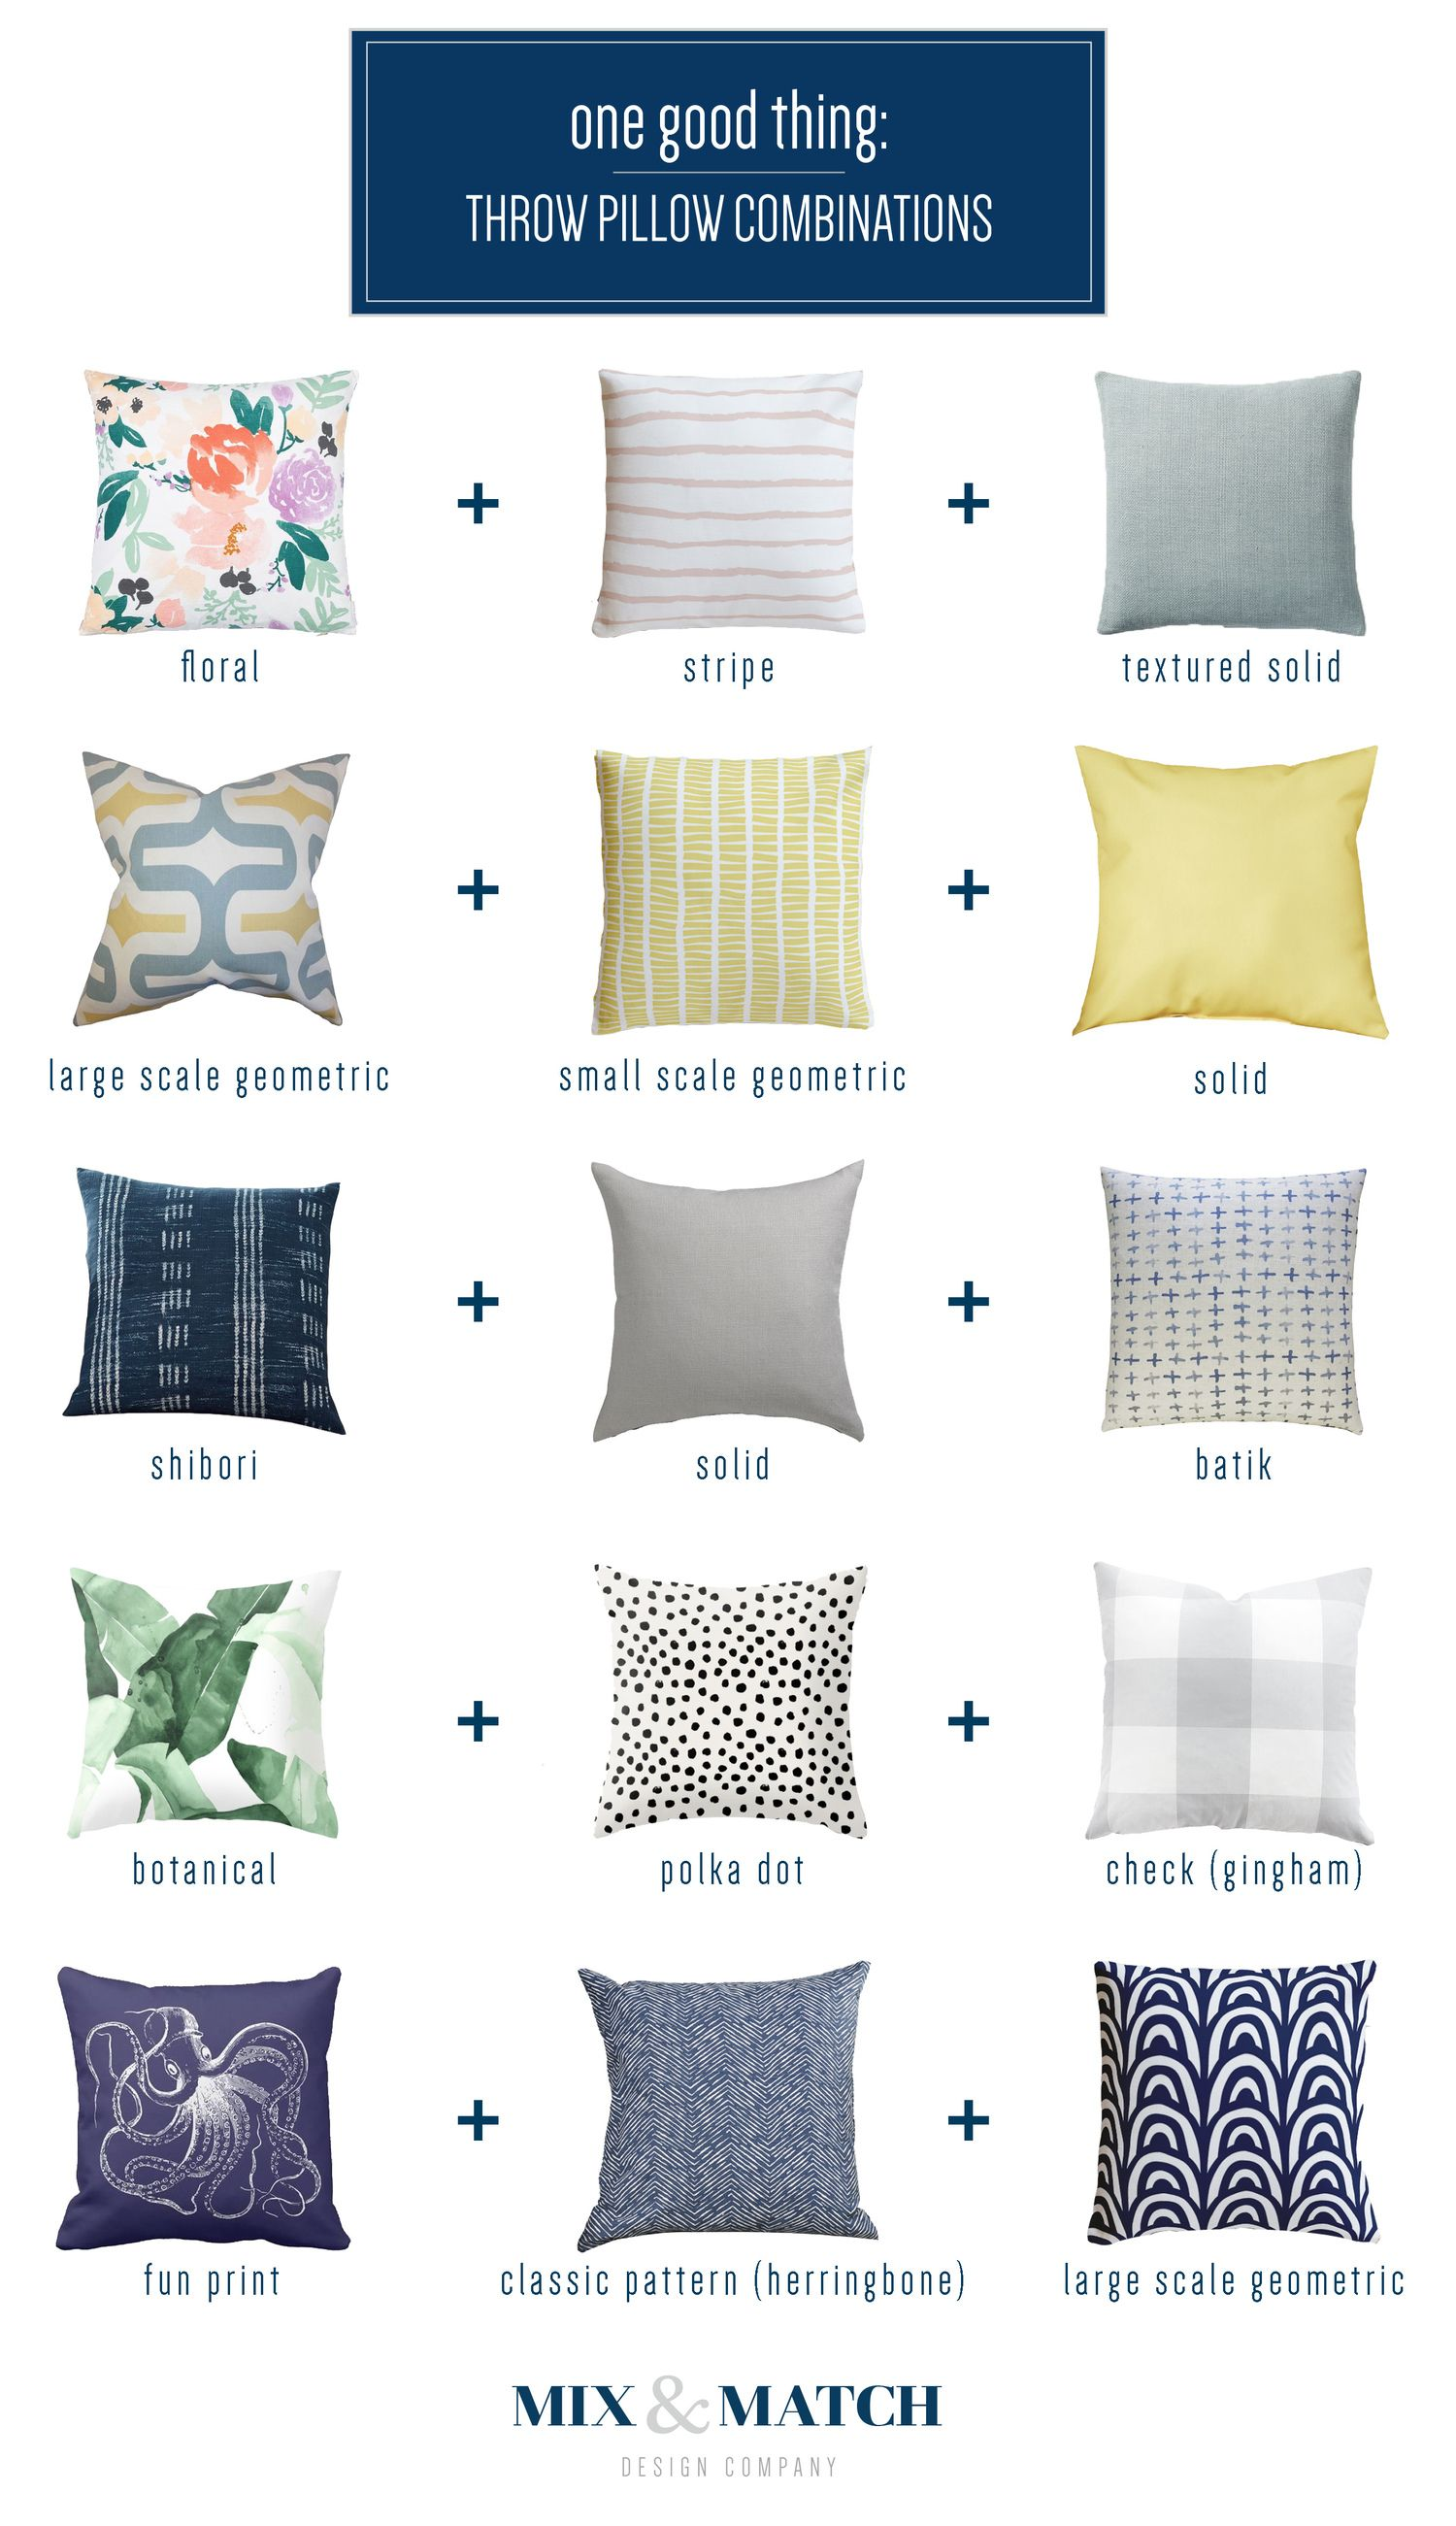 One Good Thing Throw Pillow Combinations Mix Match Design